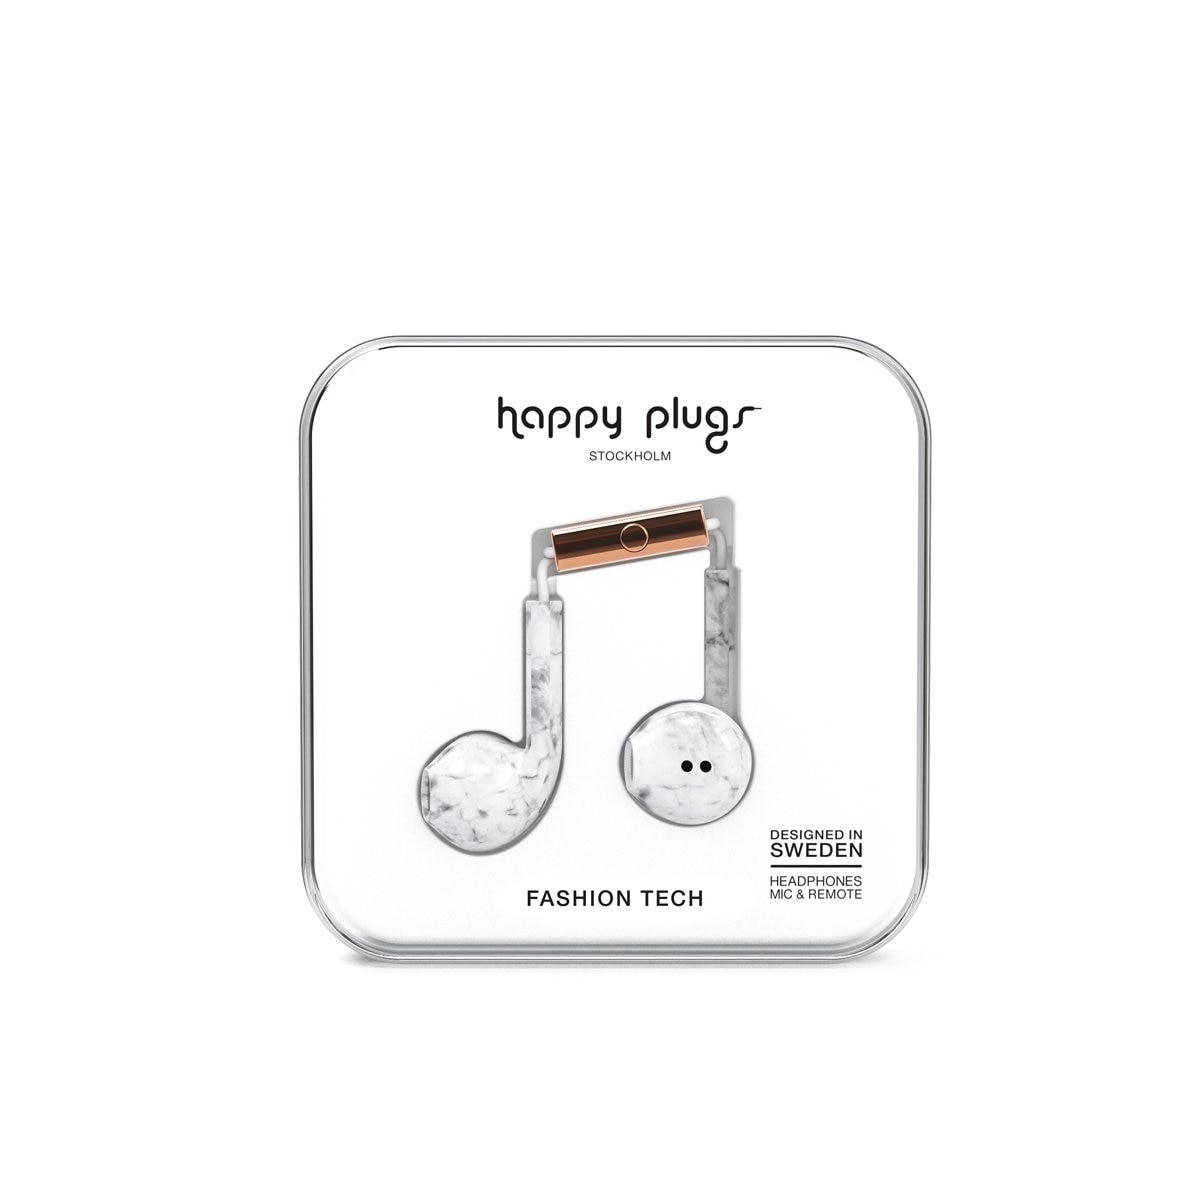 Audifonos C Microfono Earbud Deluxe White Marble Happy